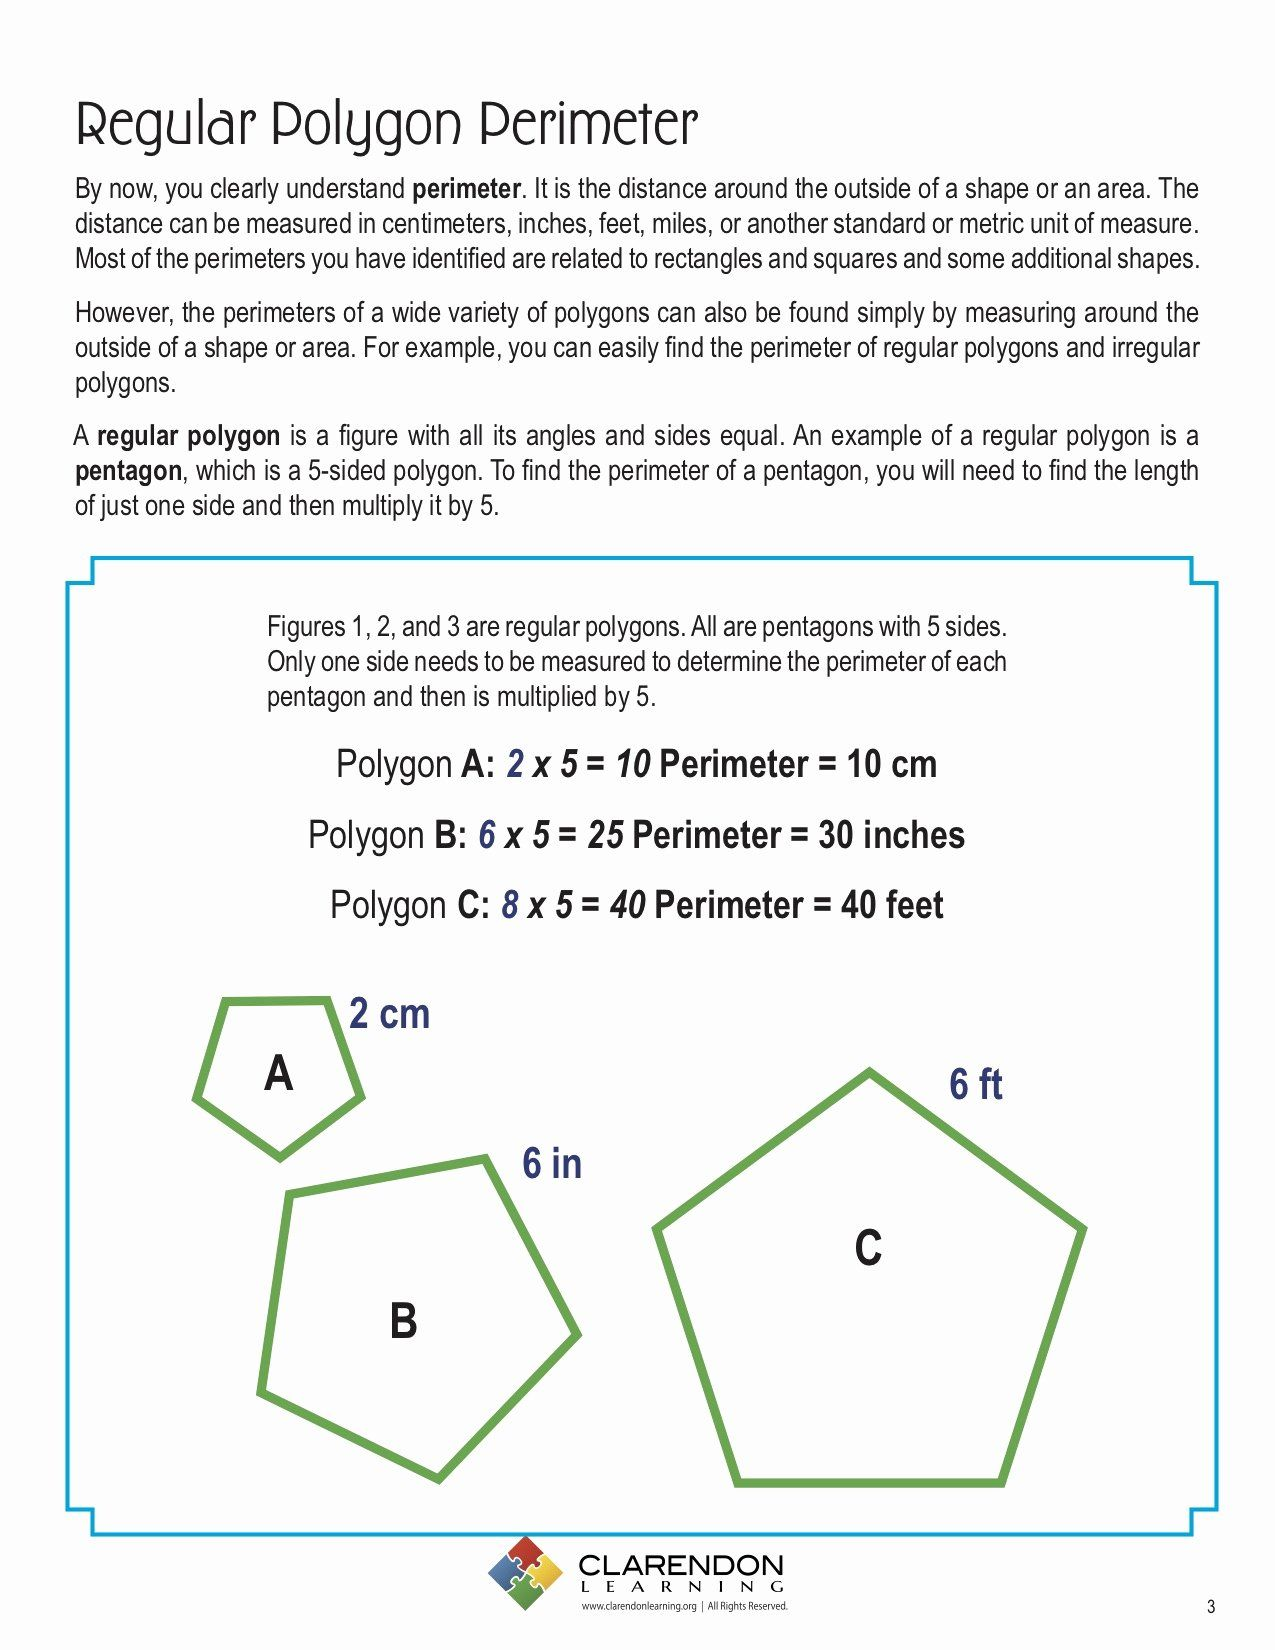 Regular Polygon Shapes Worksheet   Printable Worksheets and Activities for  Teachers [ 1650 x 1275 Pixel ]